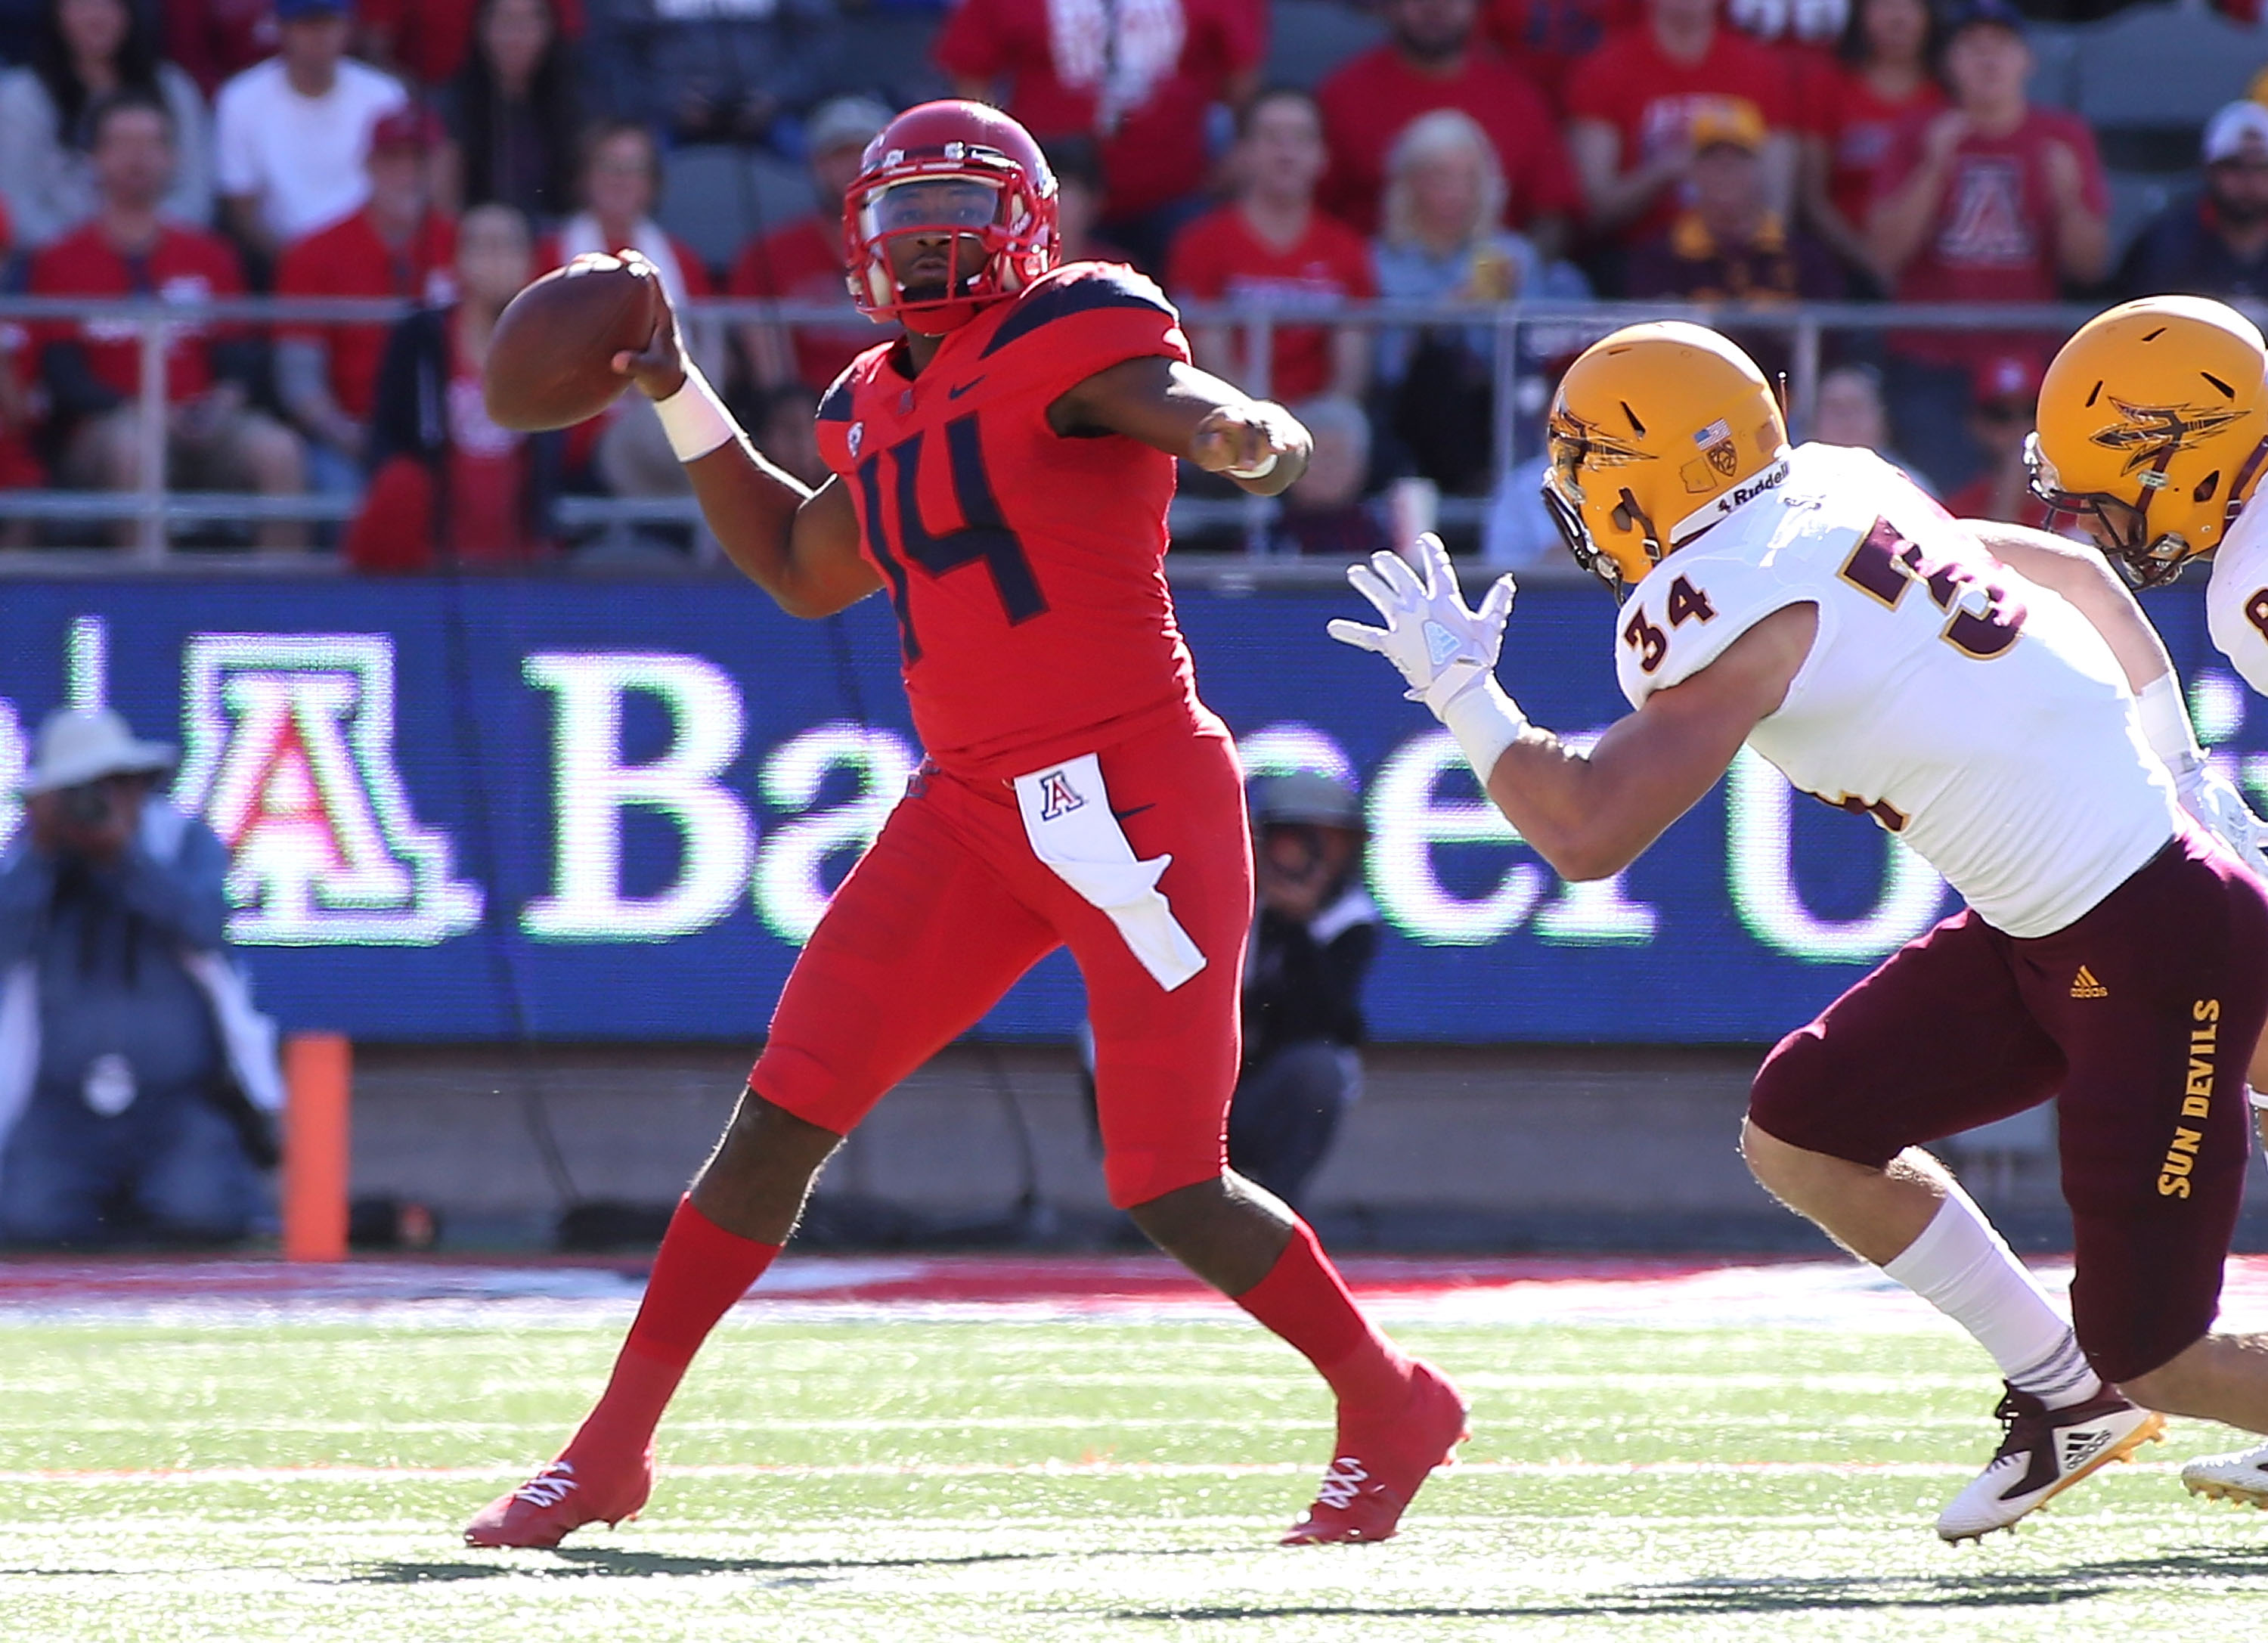 Uofa Football Score >> Arizona State Sun Devils Vs Arizona Wildcats Football